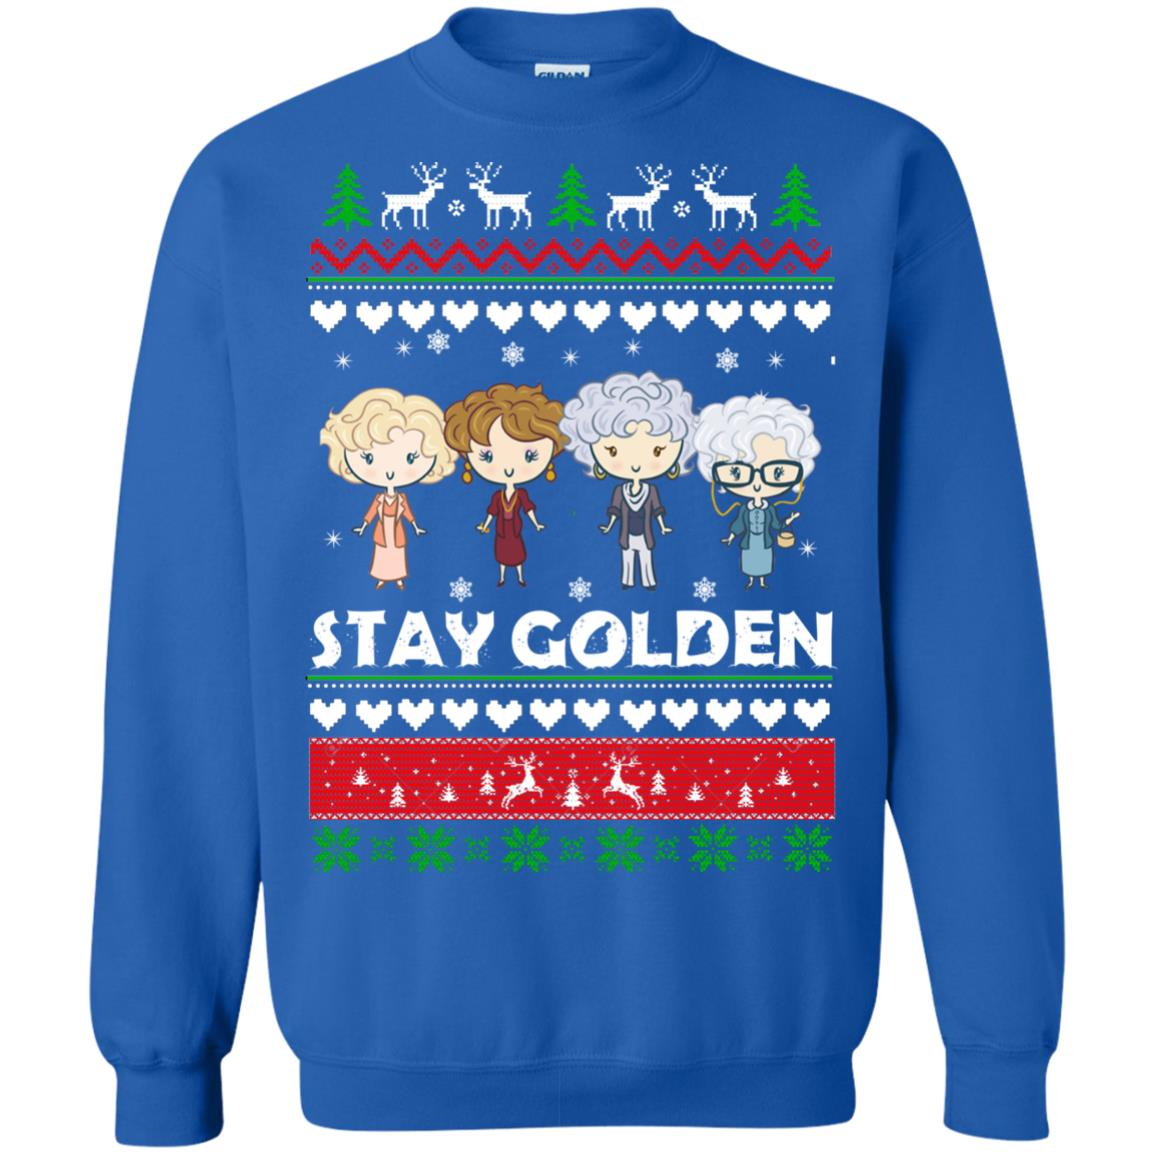 image 709 - Golden Girls Stay Golden Ugly Christmas Sweater, Hoodie